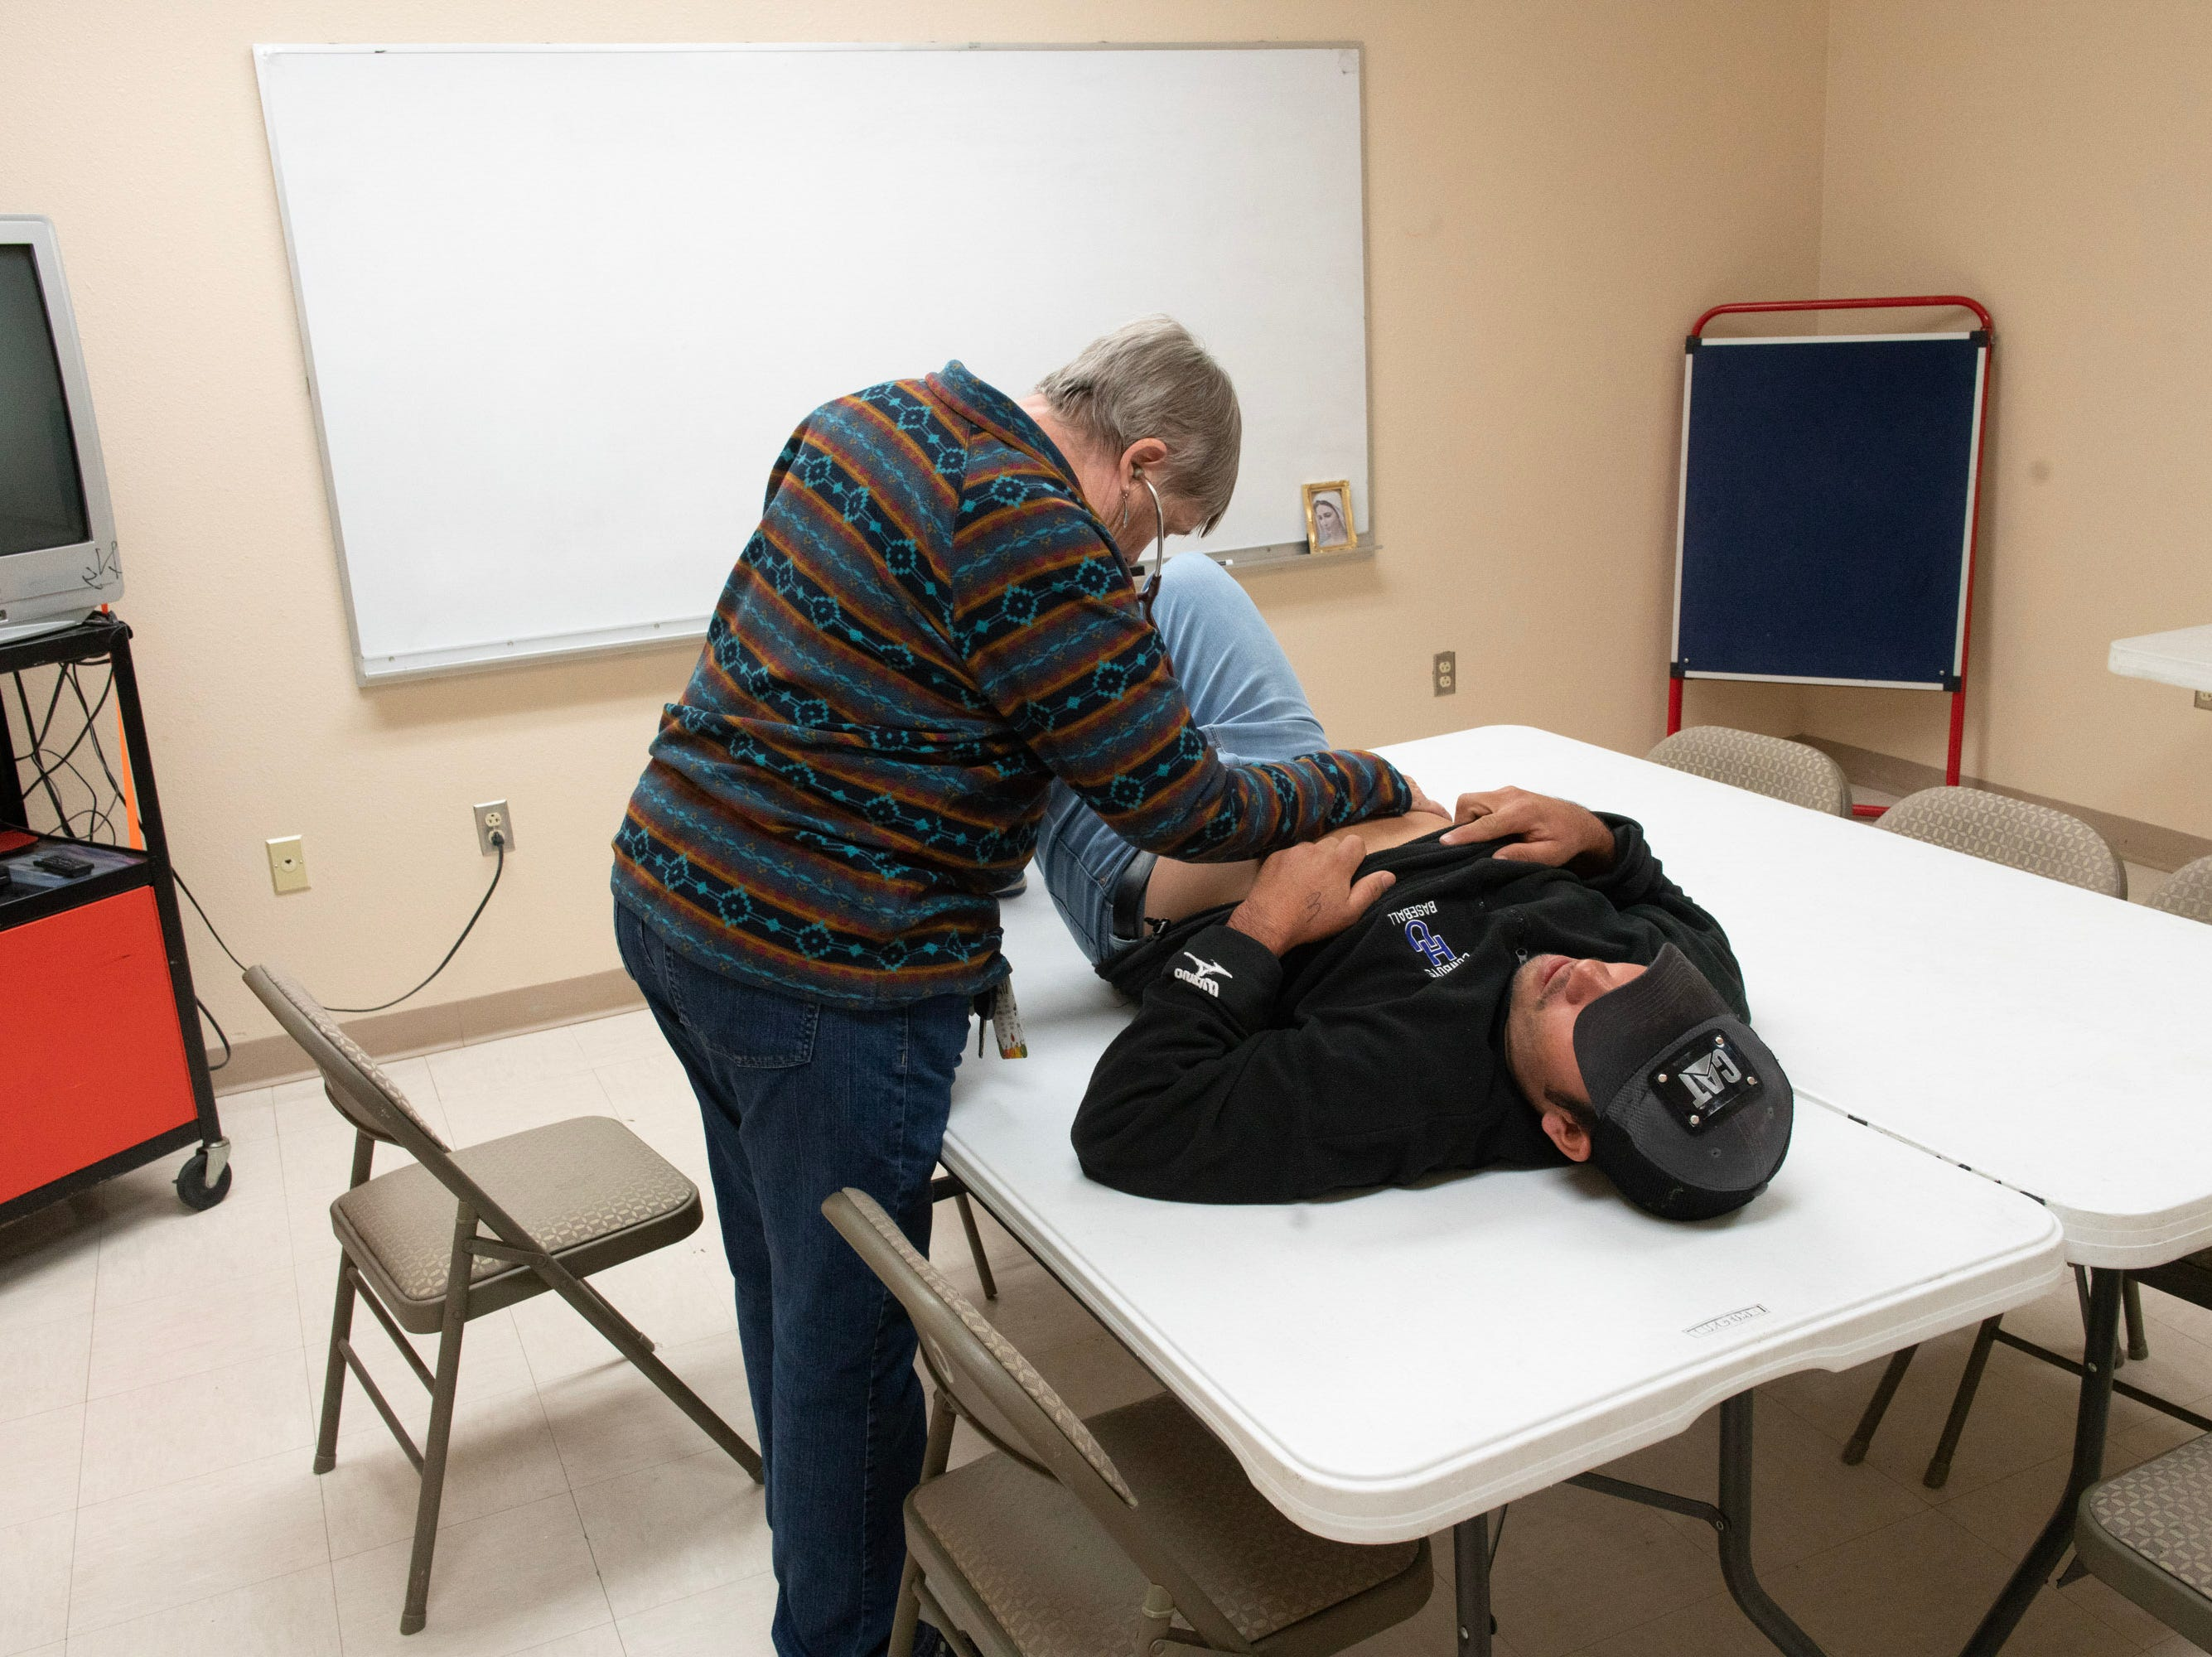 A volunteer doctor at a shelter in Doña Ana County examines an immigrant man complaining of acute abdominal pain.